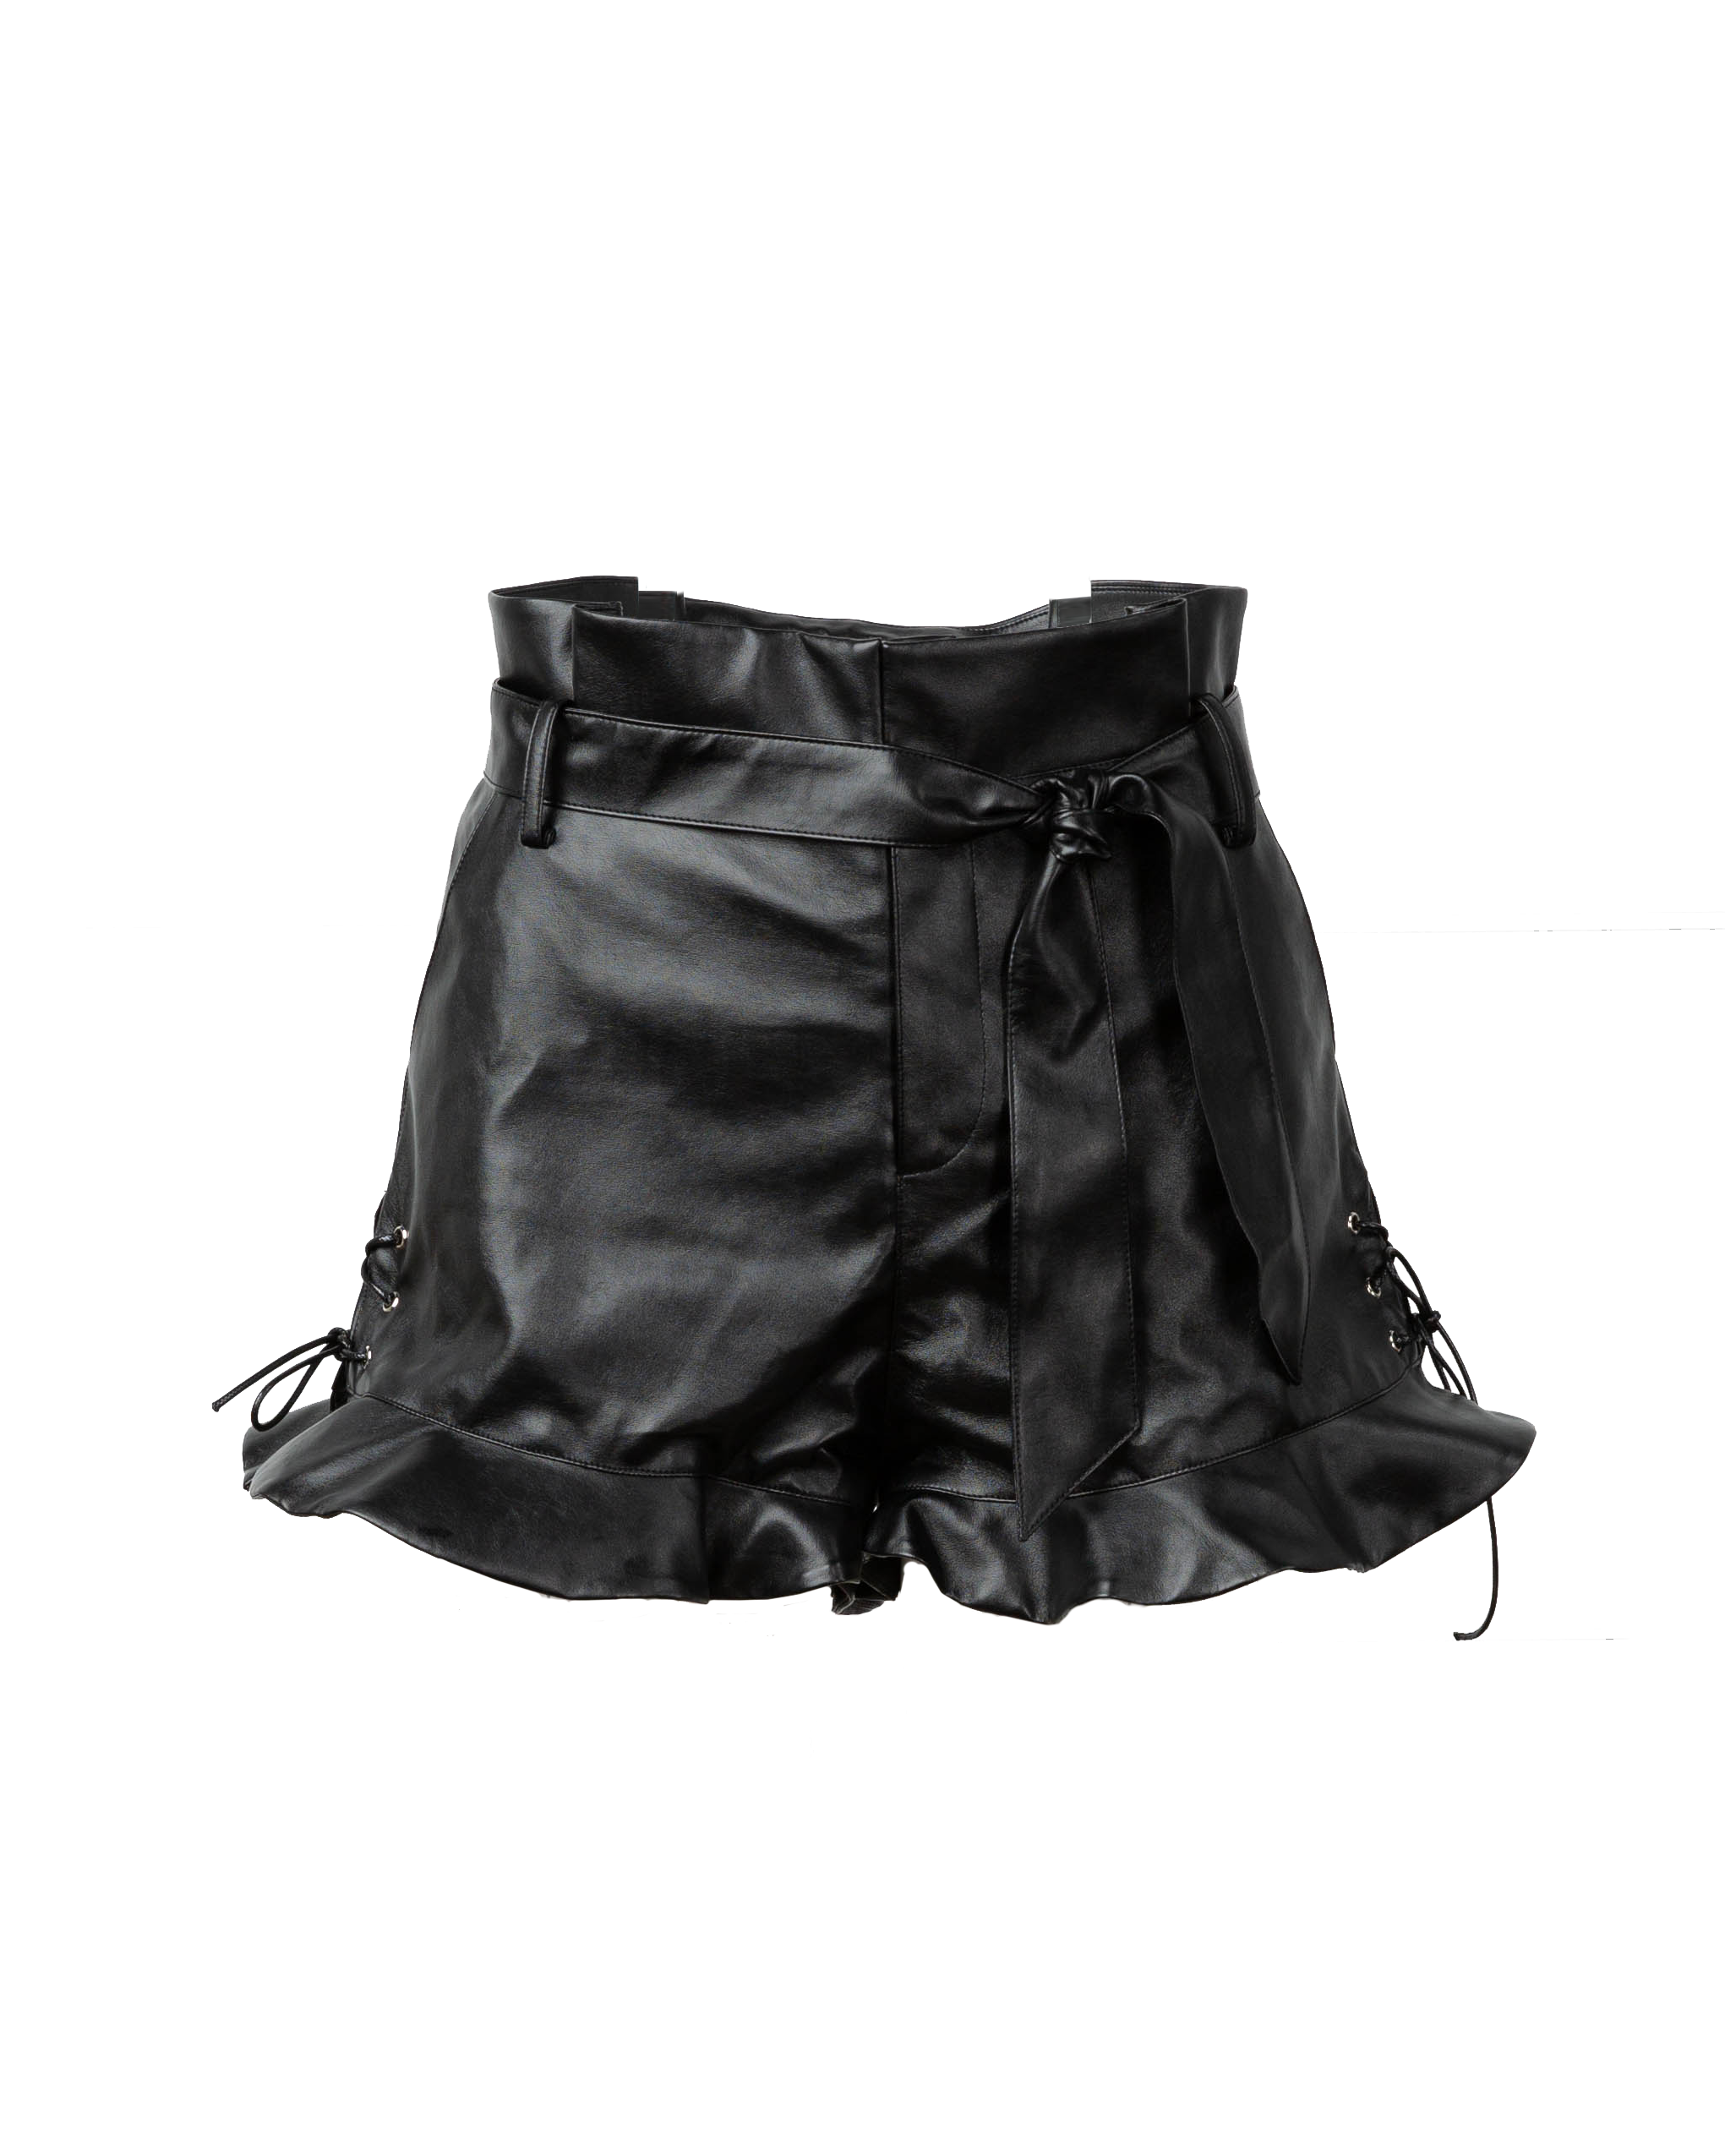 Black Leather Shorts  | Holiday Gift Guide | J.ING